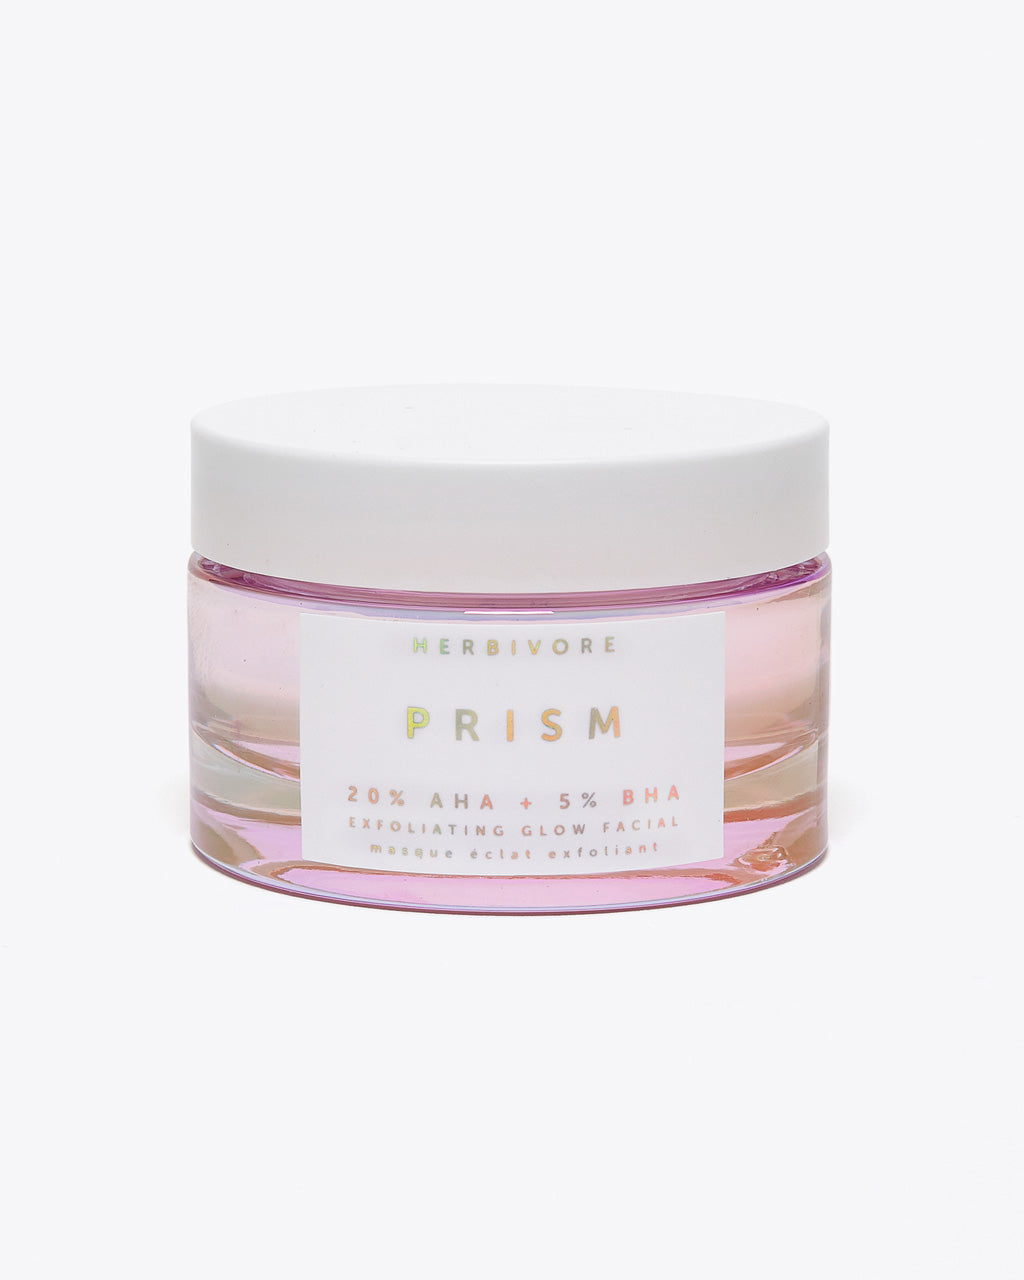 exfoliating facial glow in a round jar